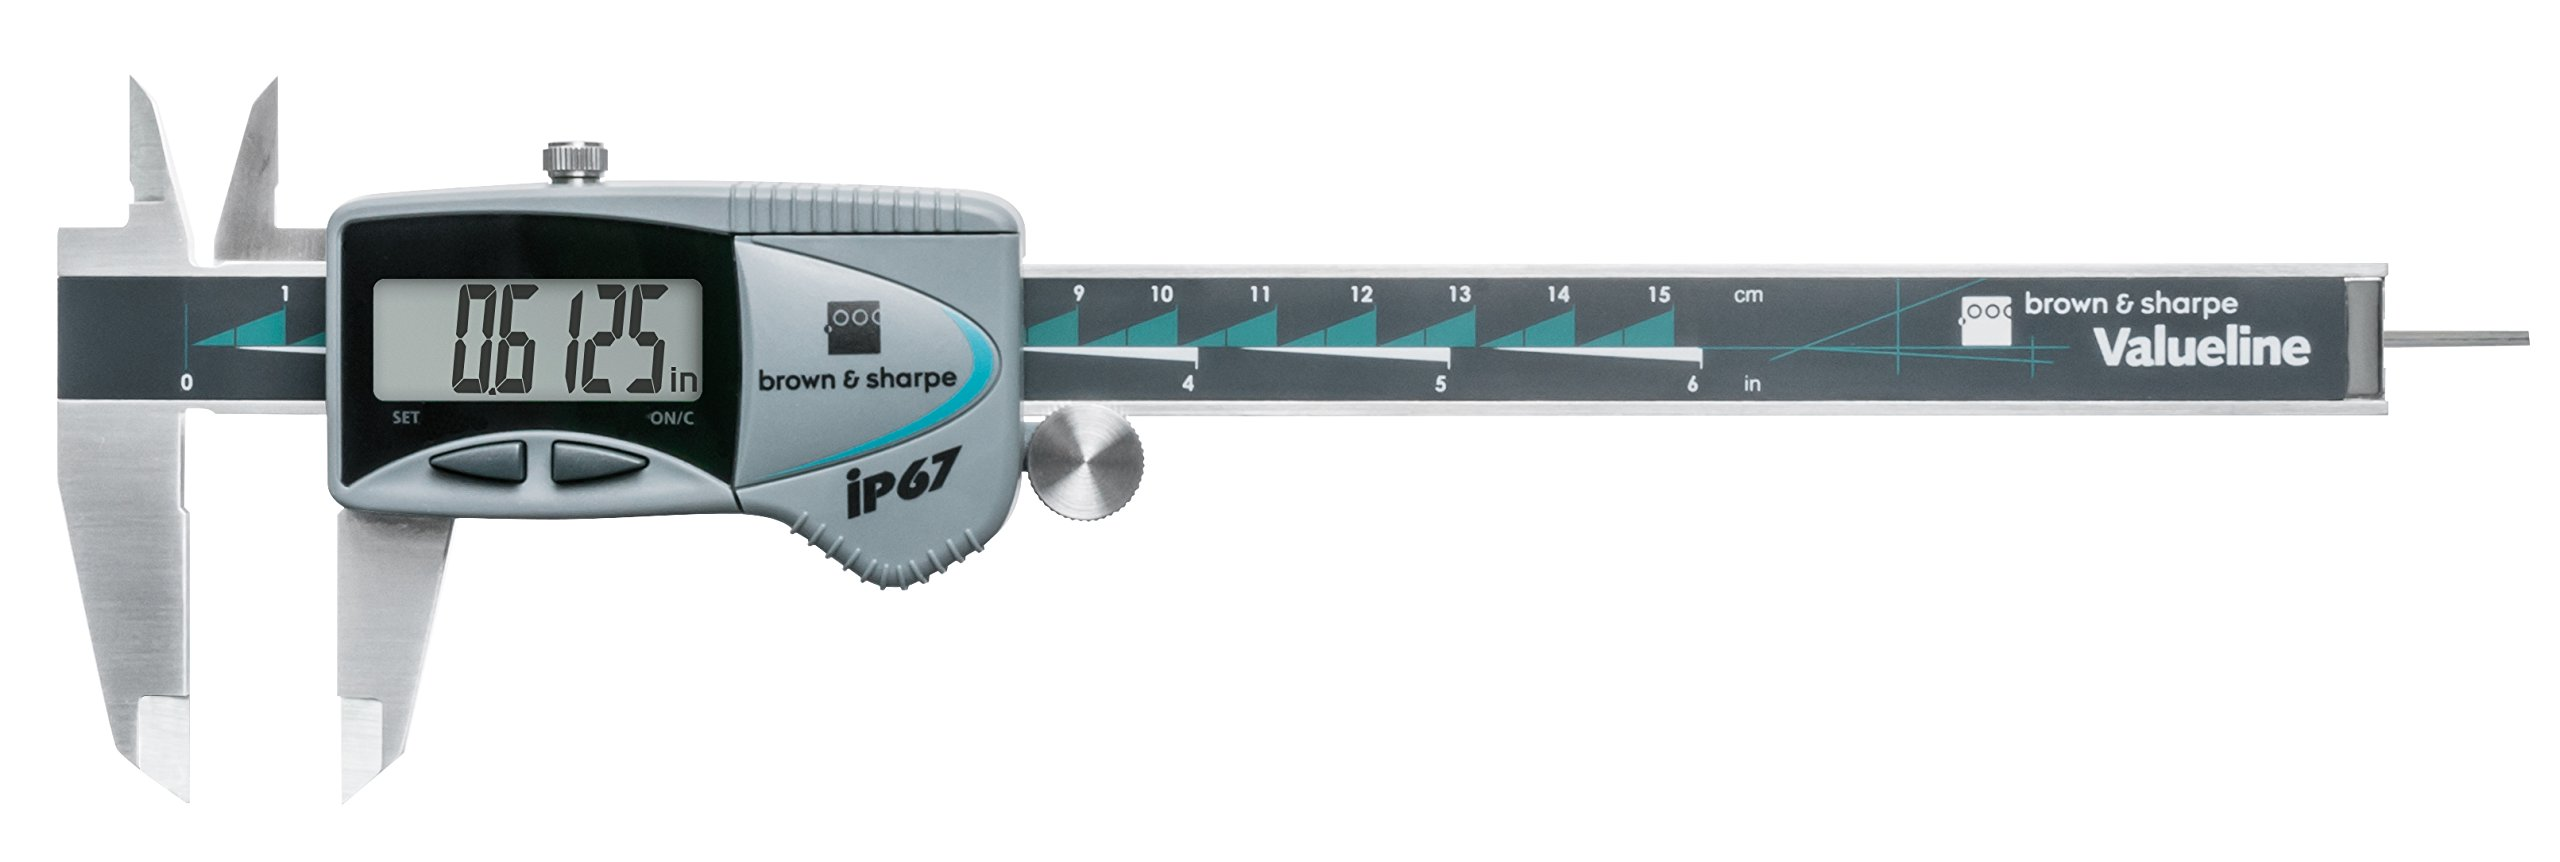 Brown & Sharpe 00599391 Valueline IP67 Electronic Caliper, 0 to 6'' Range, 0.0005'' Resolution, Round Depth Rod